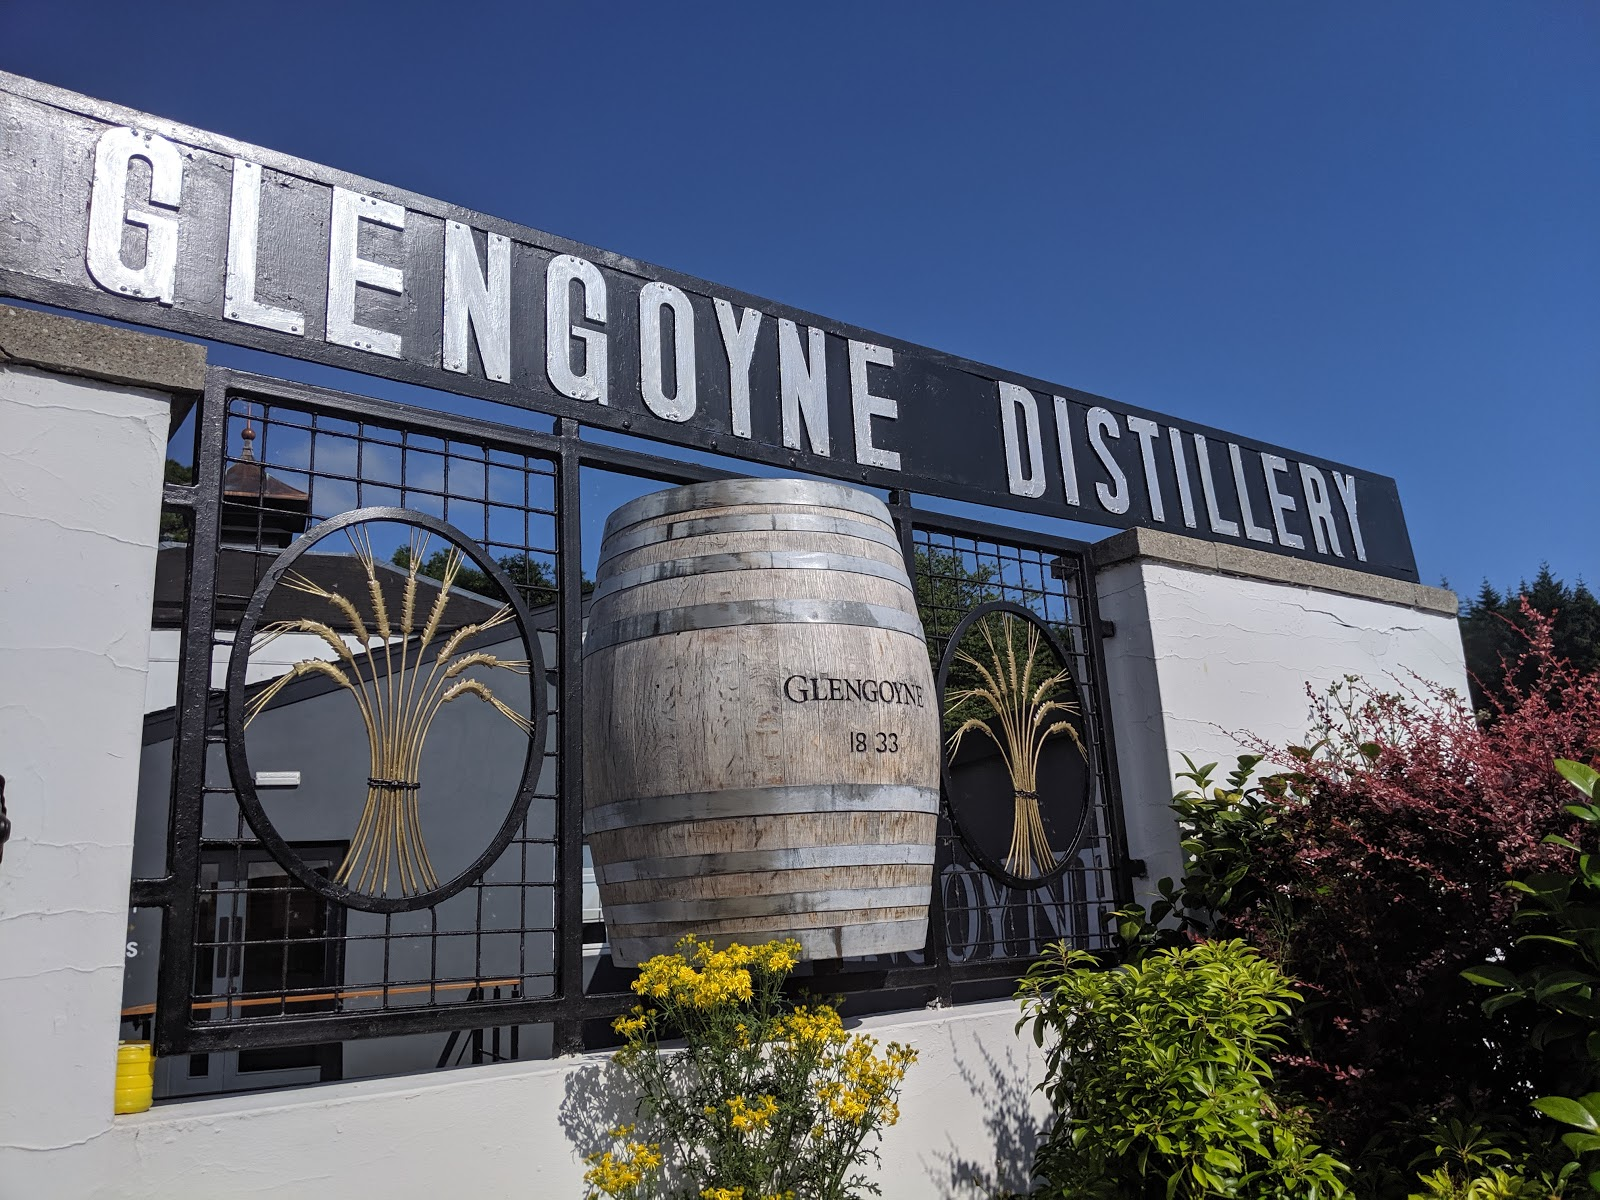 A Short Break at Cameron Lodges, Loch Lomond - Glengoyne Distillery Tour -